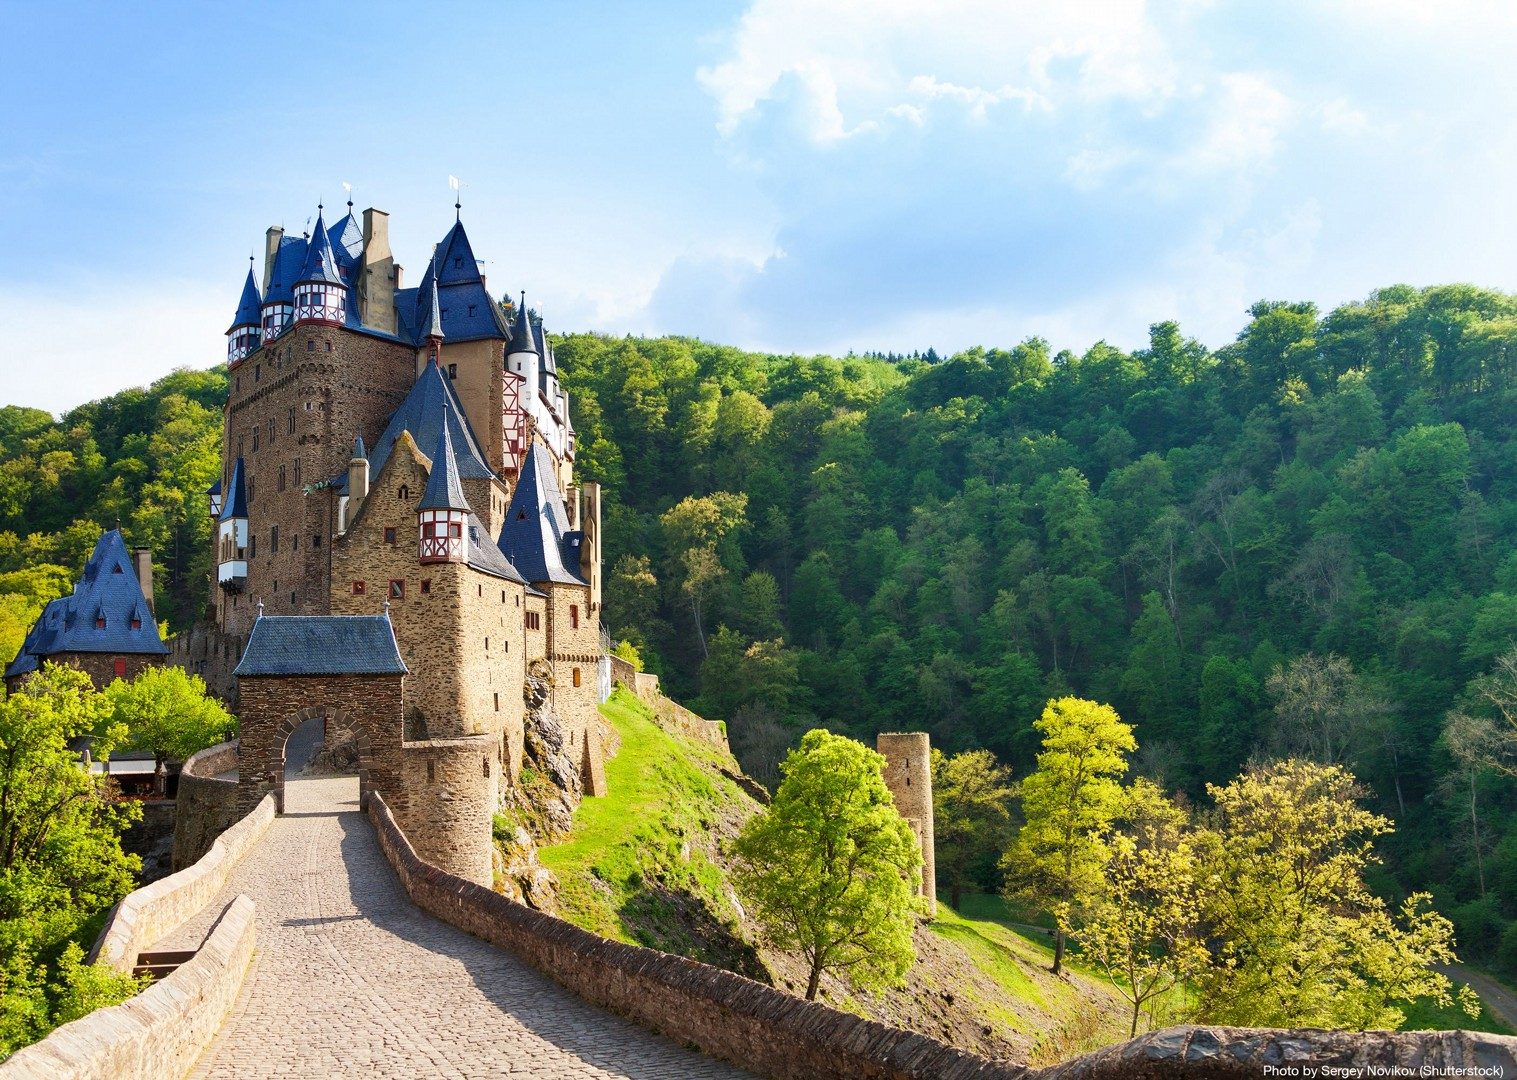 germany-moselle-valley-self-guided-leisure-cycling-holiday.jpg - Germany - Moselle Valley - Self-Guided Leisure Cycling Holiday - Leisure Cycling